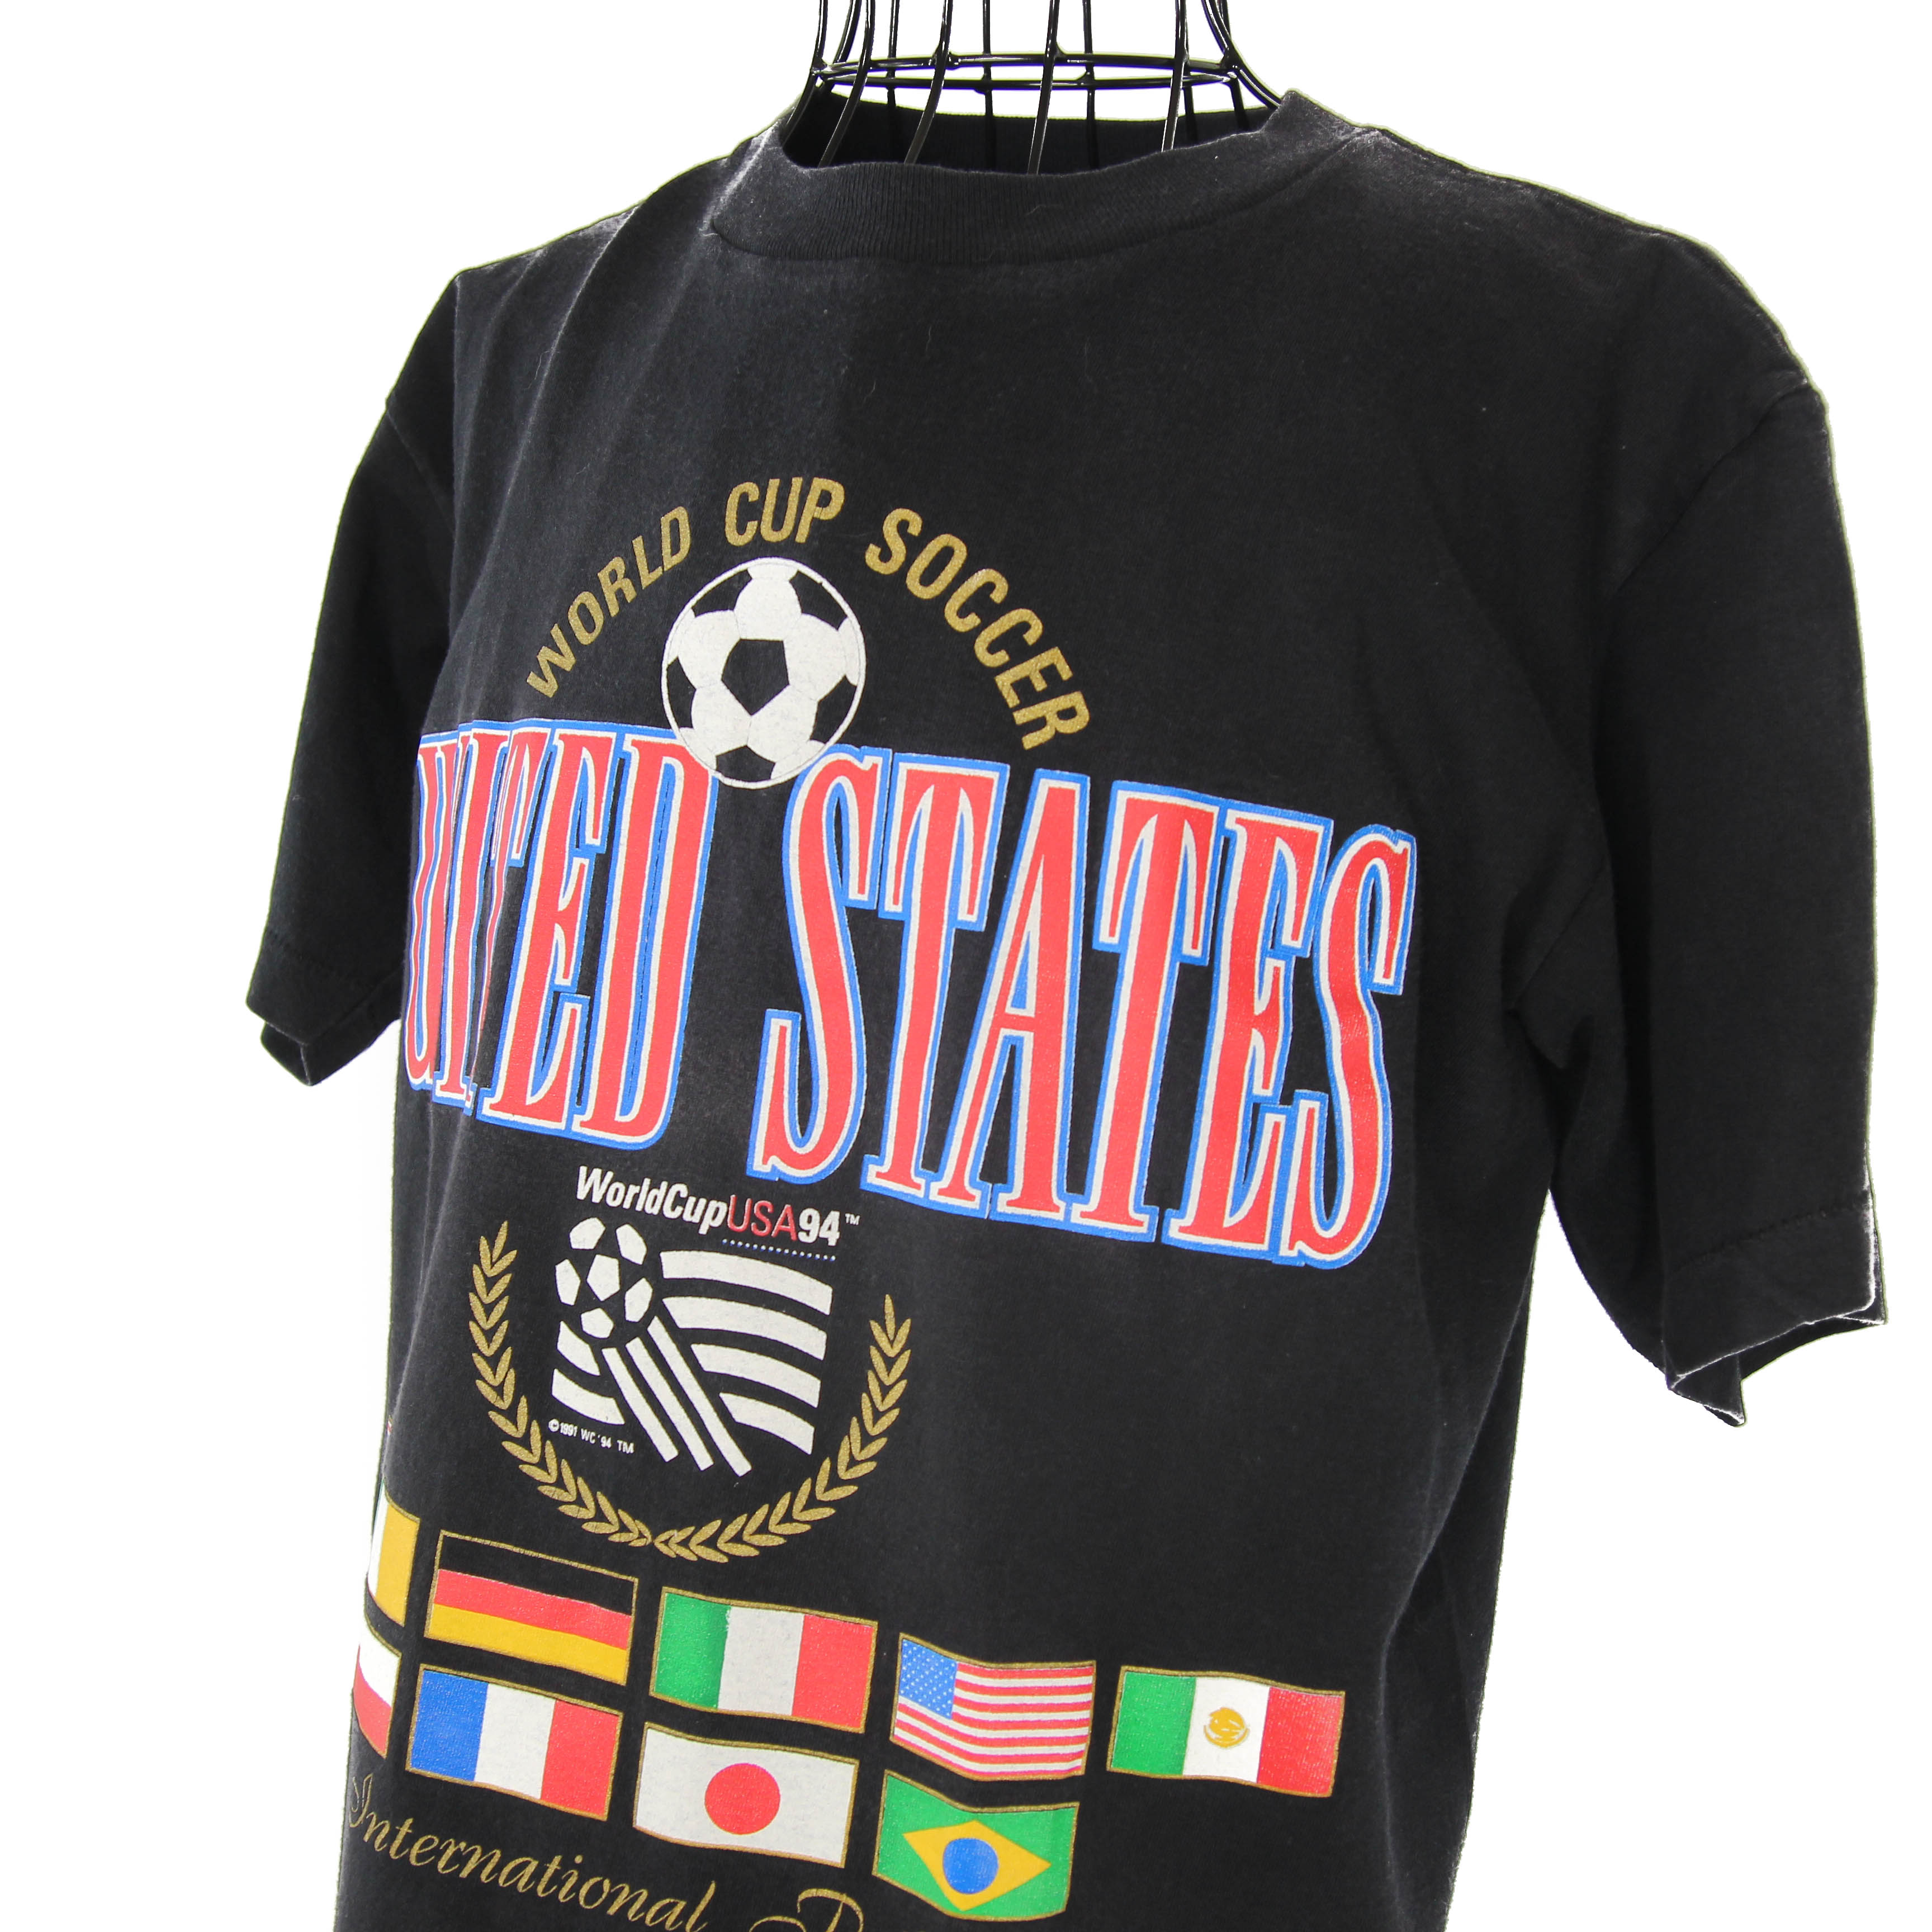 d2f0141c7ed Vintage 1994 World Cup Soccer Graphic T | Grailed